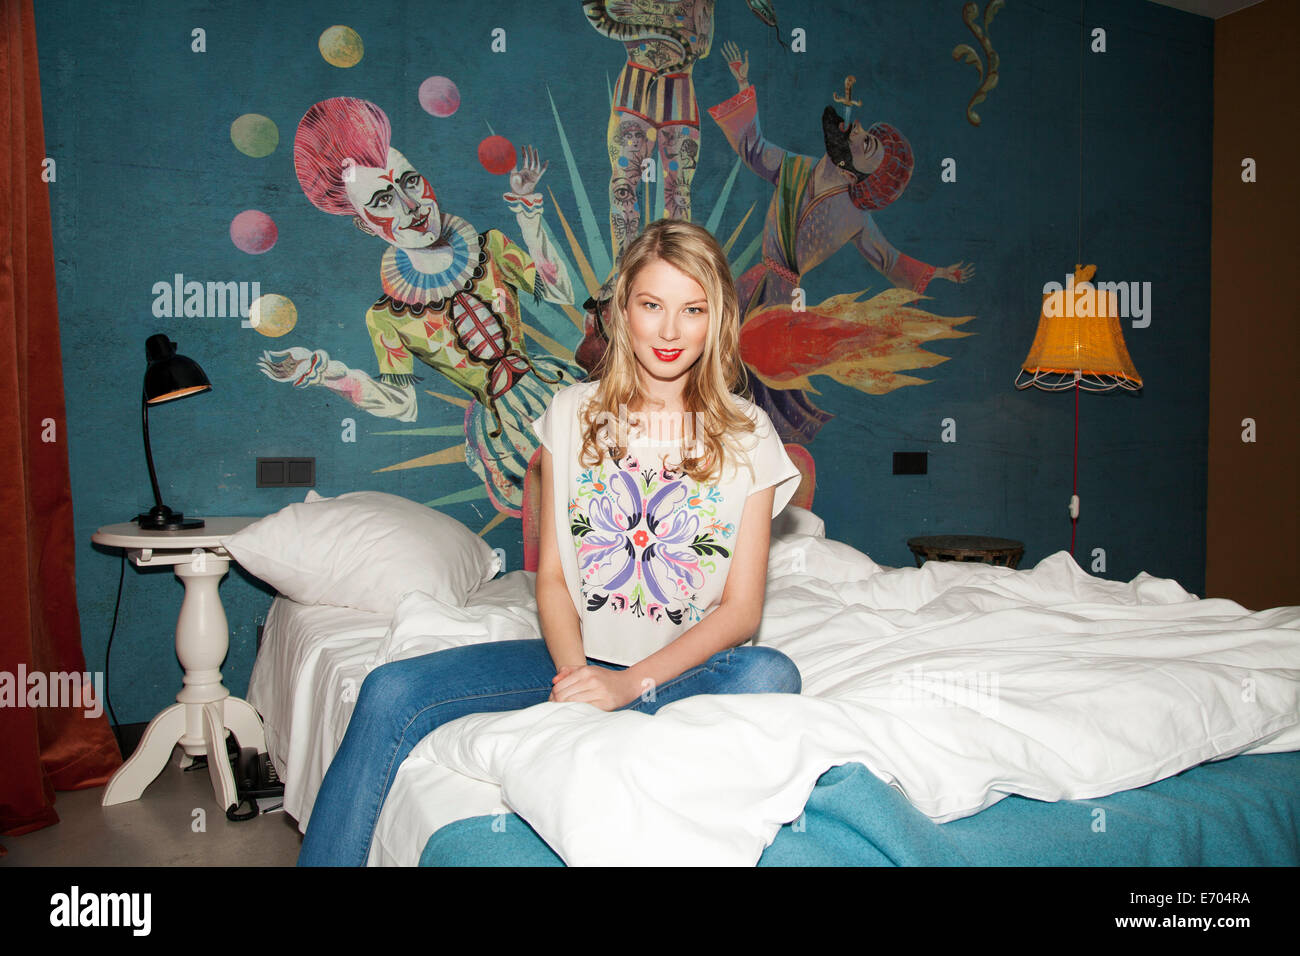 Portrait of young woman sitting on hotel bed Banque D'Images